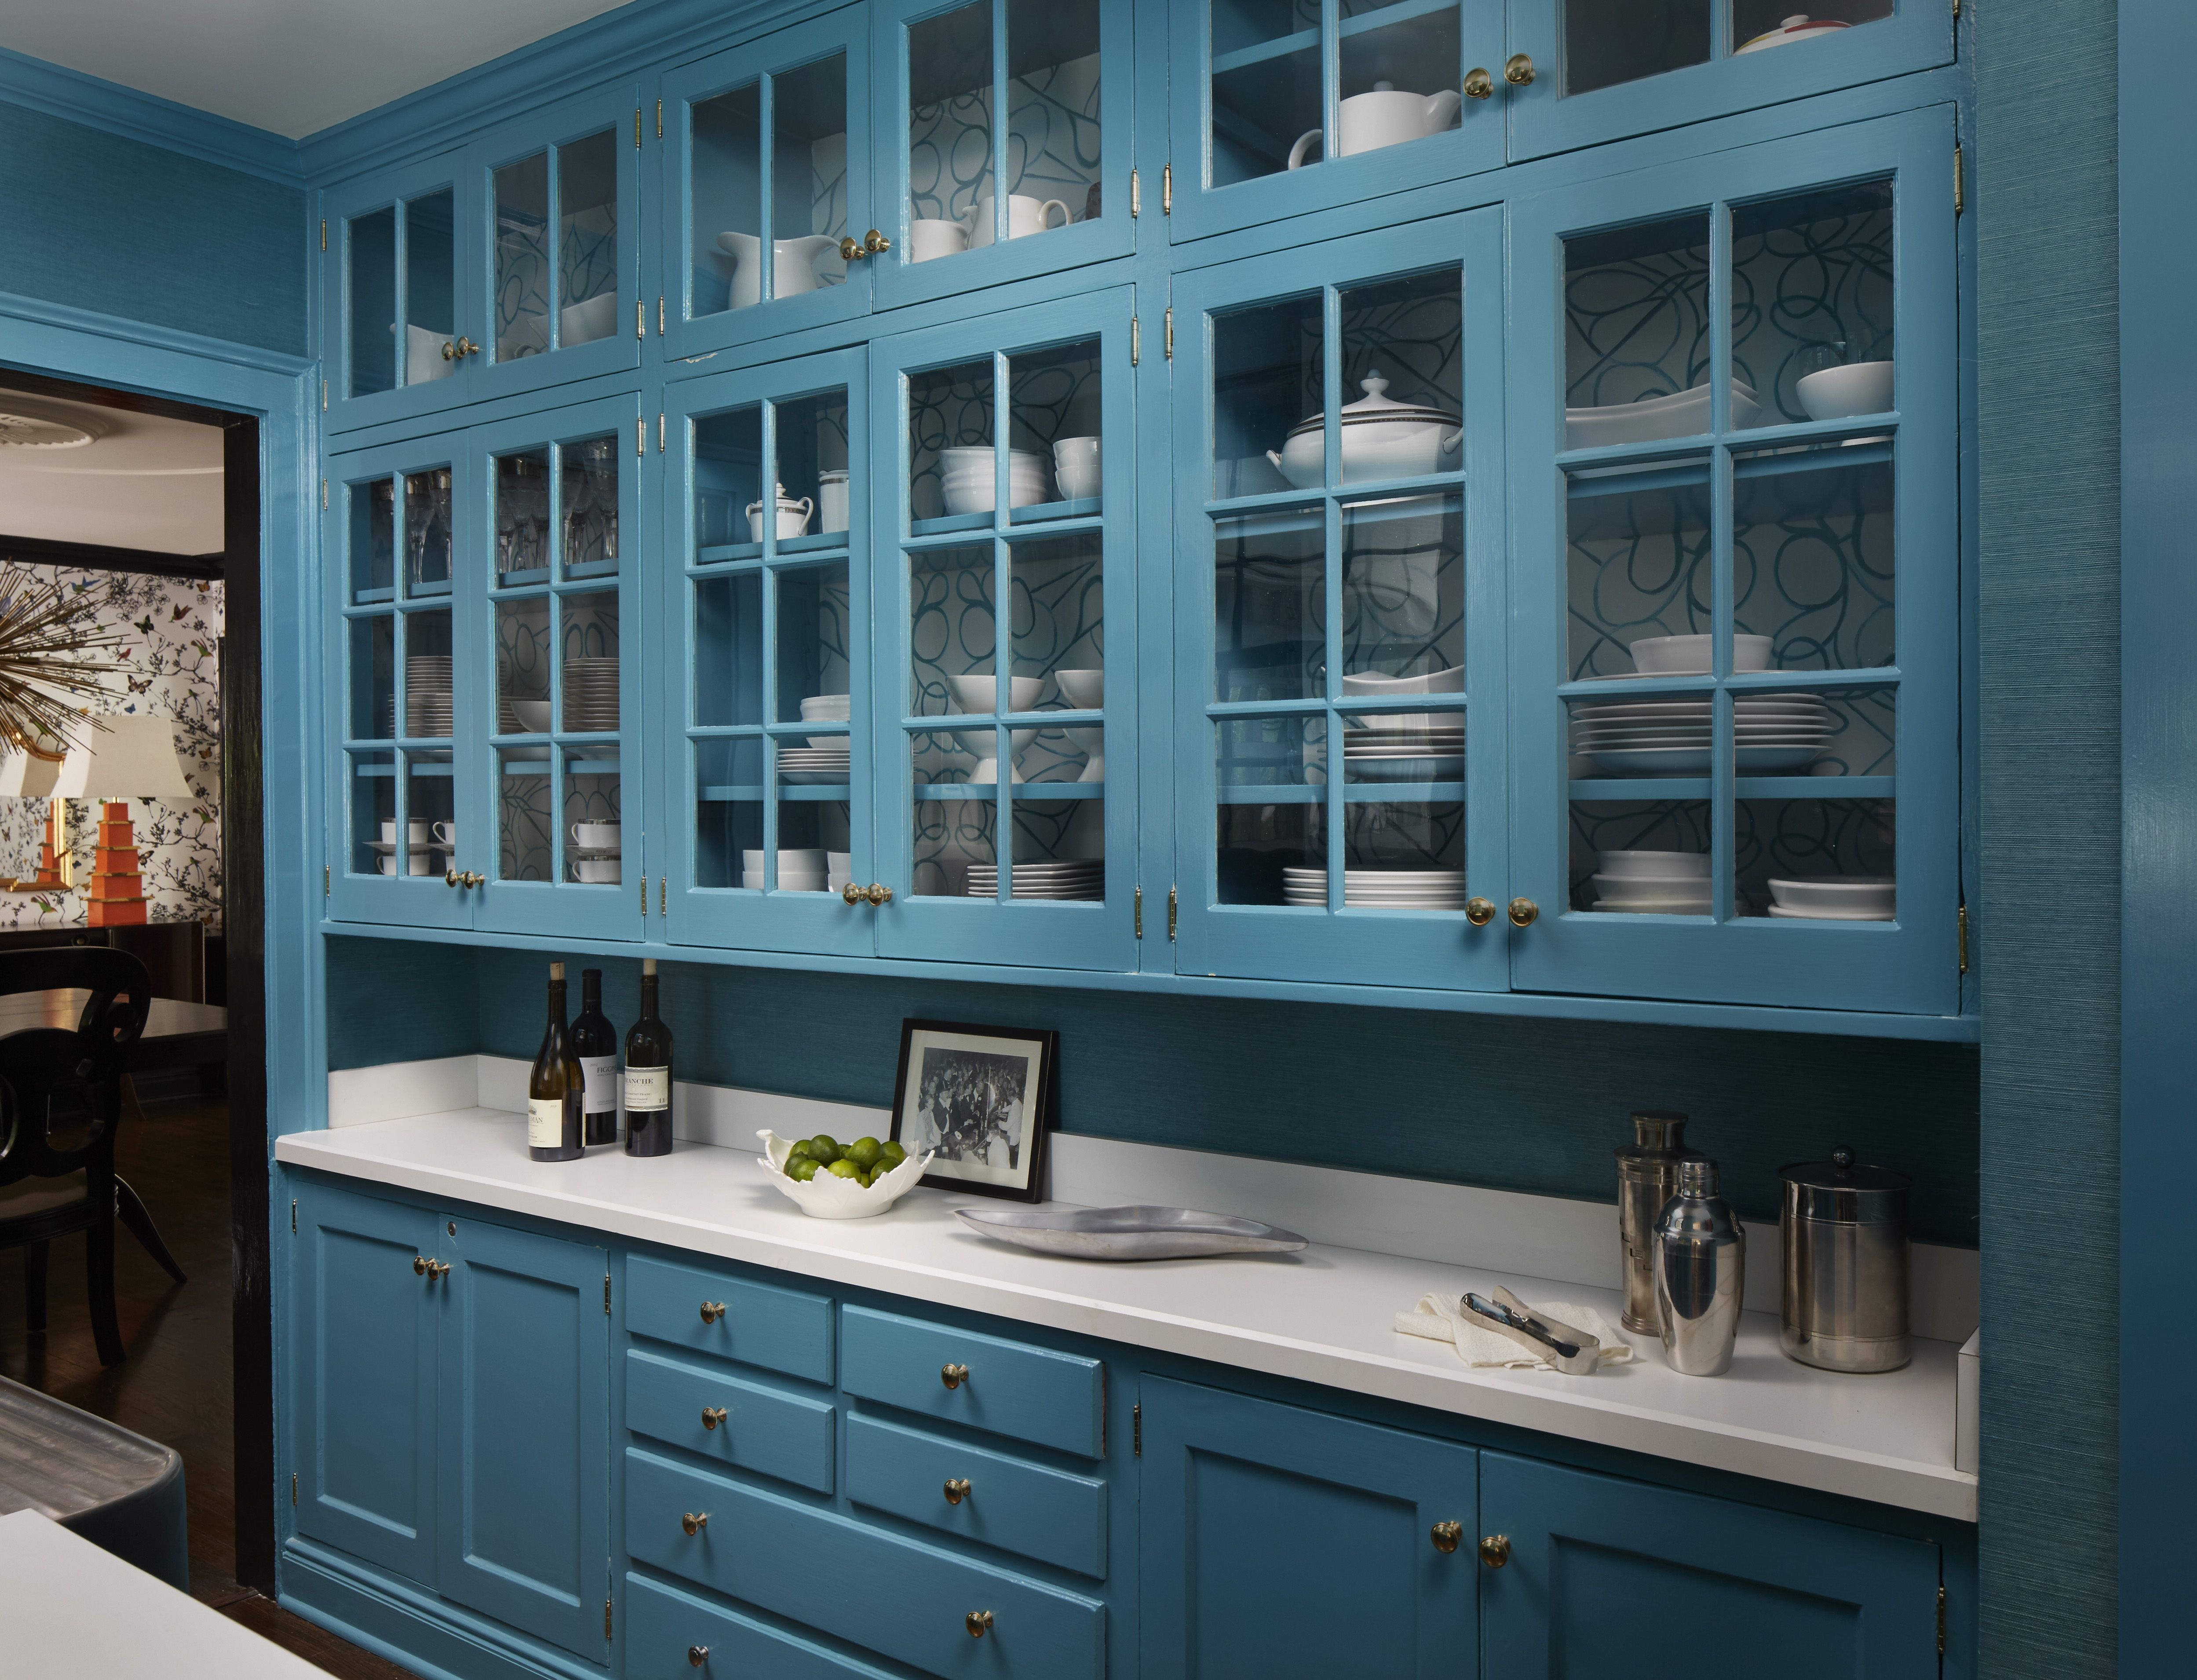 Pantry Kitchen Cabinets Revamping A Kitchen Using Pantry Cabinets ...